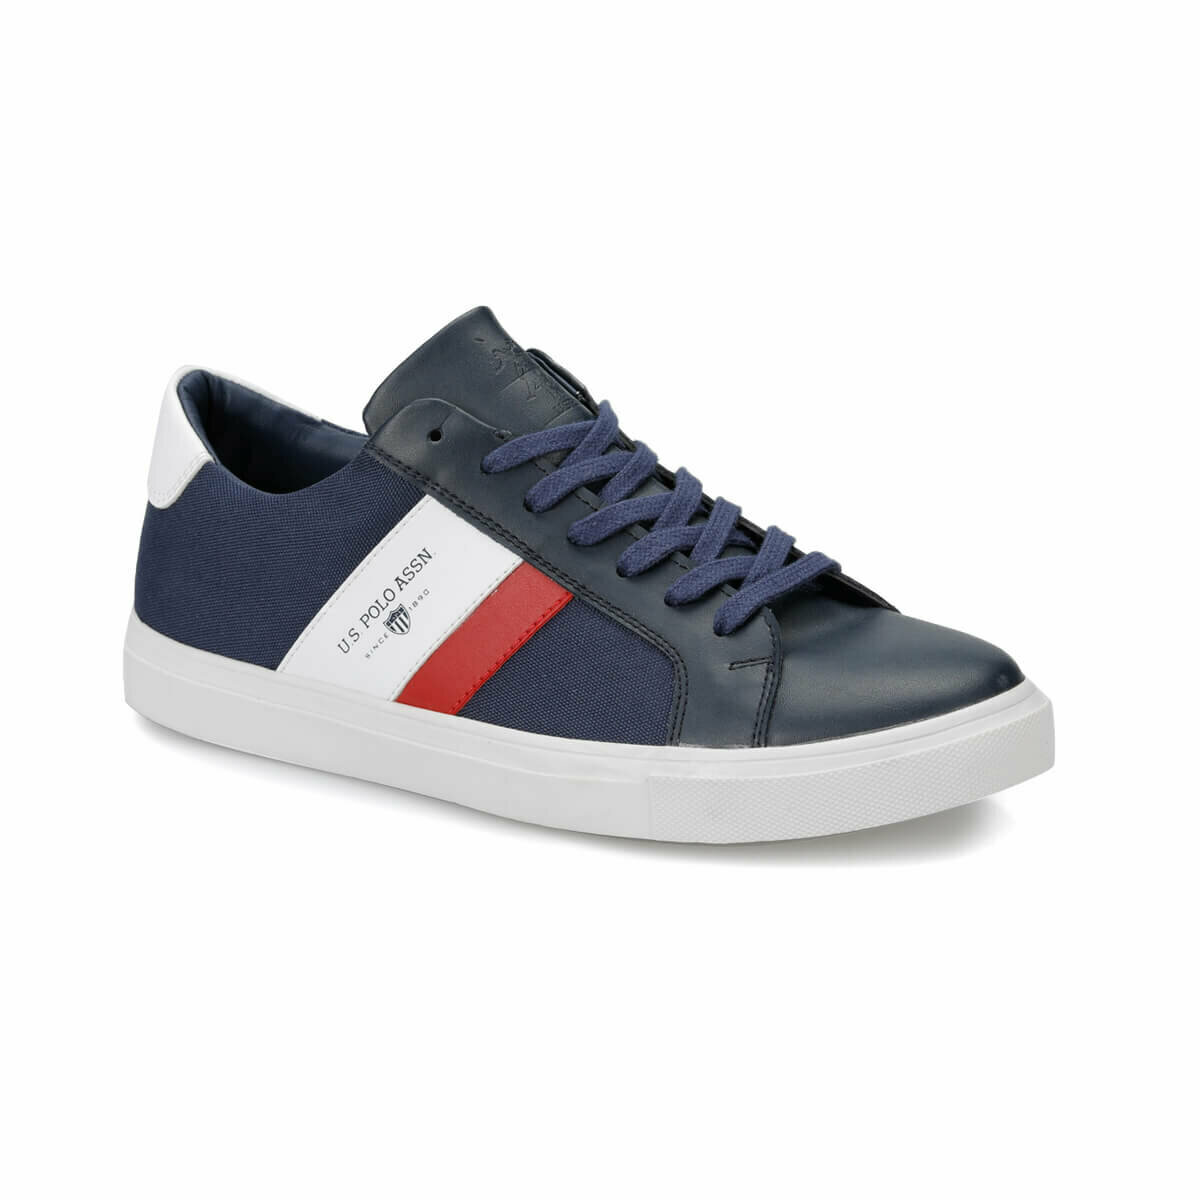 FLO ANTON Navy Blue Men 'S Shoes U.S. POLO ASSN.